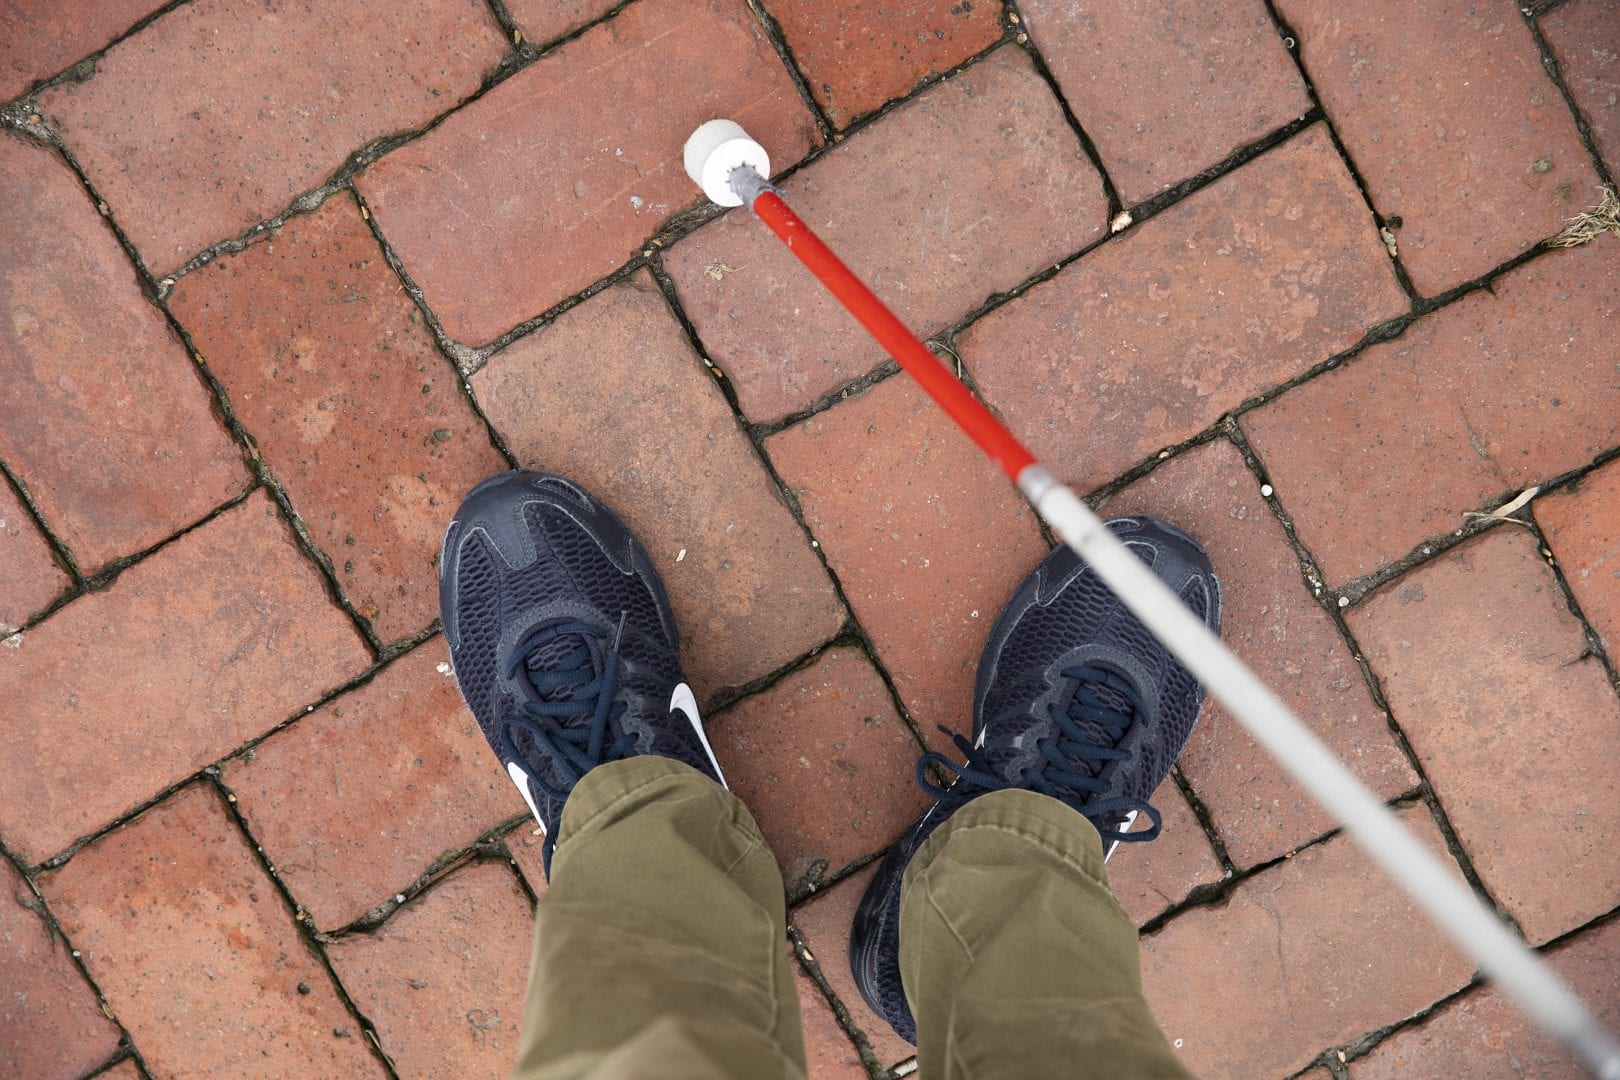 birds eye view of sneakered feet and a white cane on brick